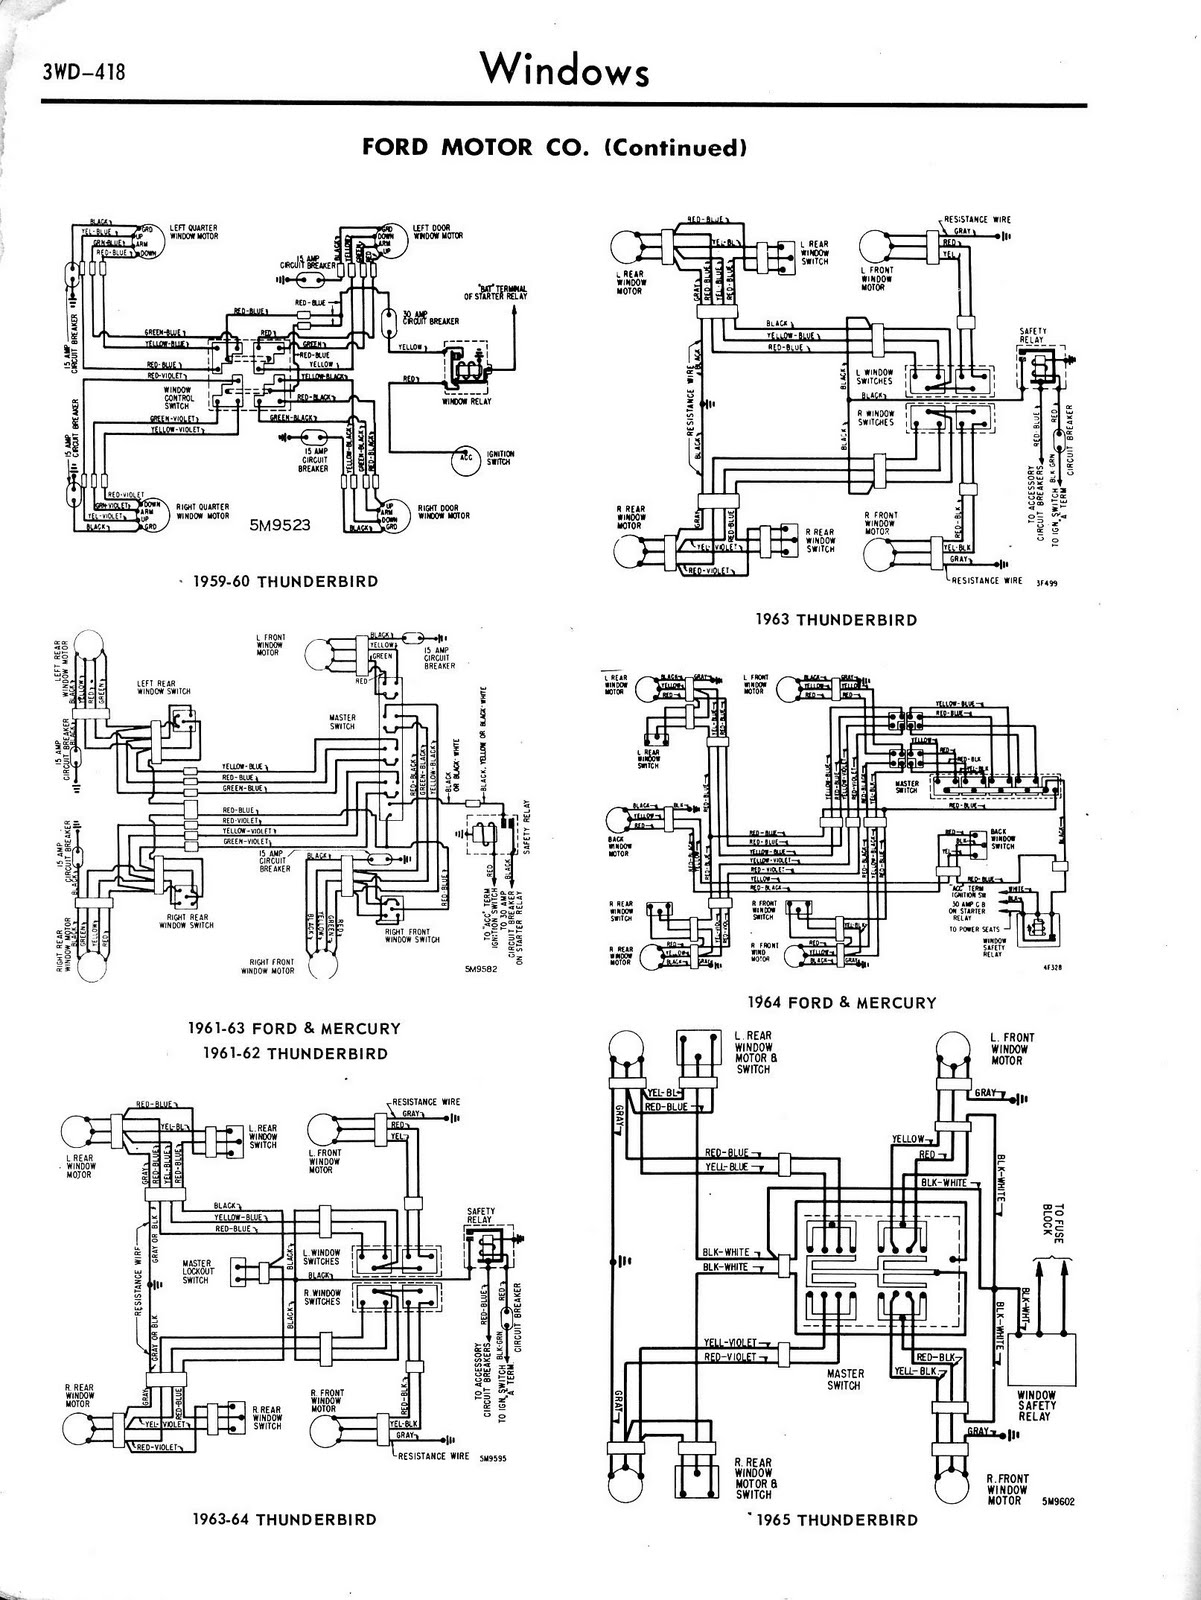 Free Auto Wiring Diagram  1965 Ford Thunderbird Window Controls Diagram